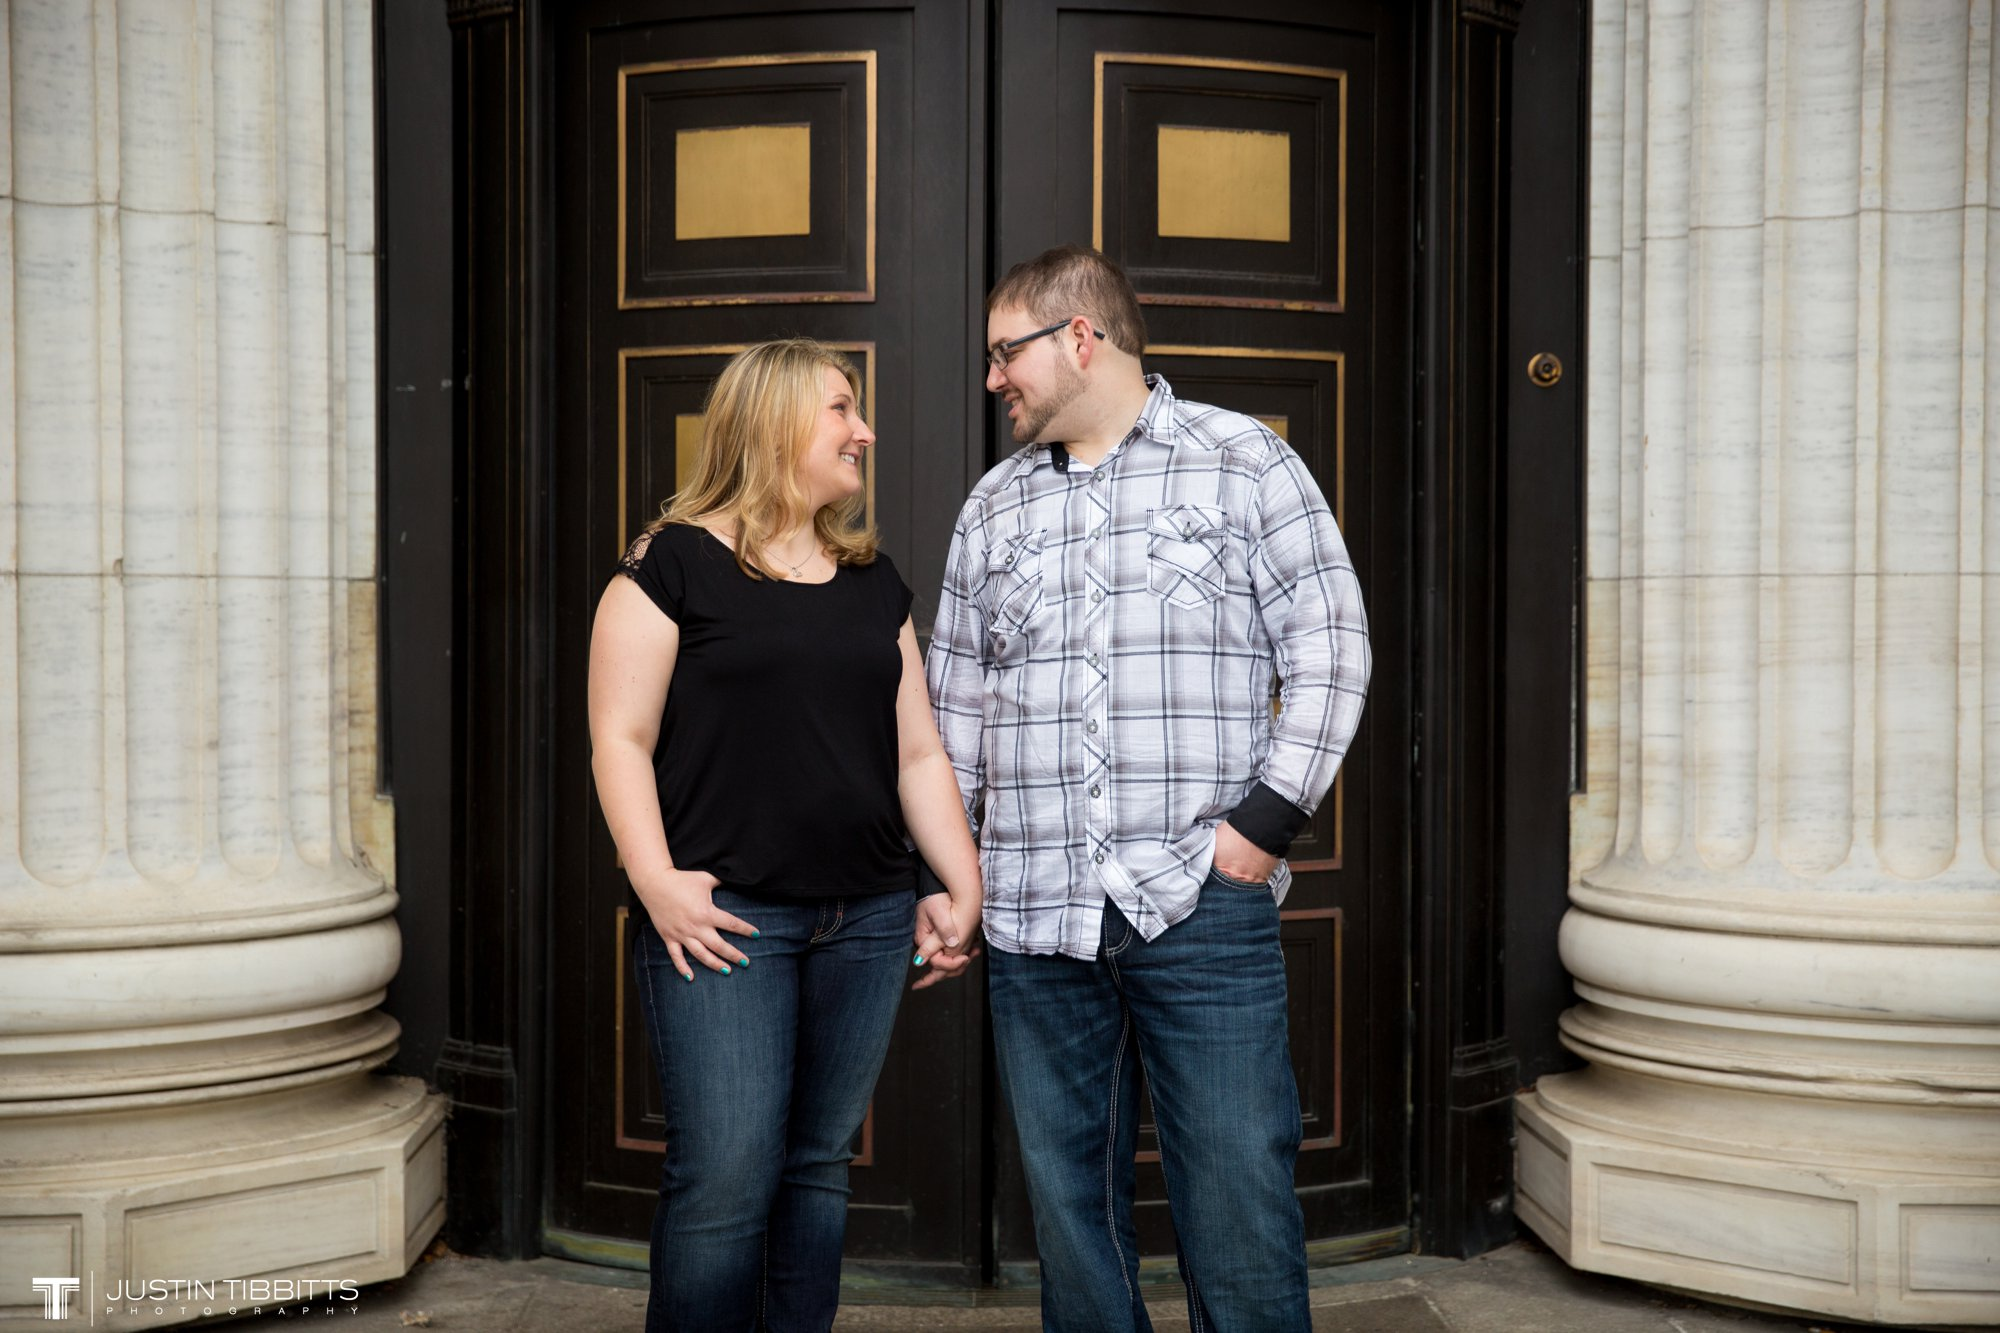 Justin Tibbitts Photography Jessica and Steve H E-shoot-71